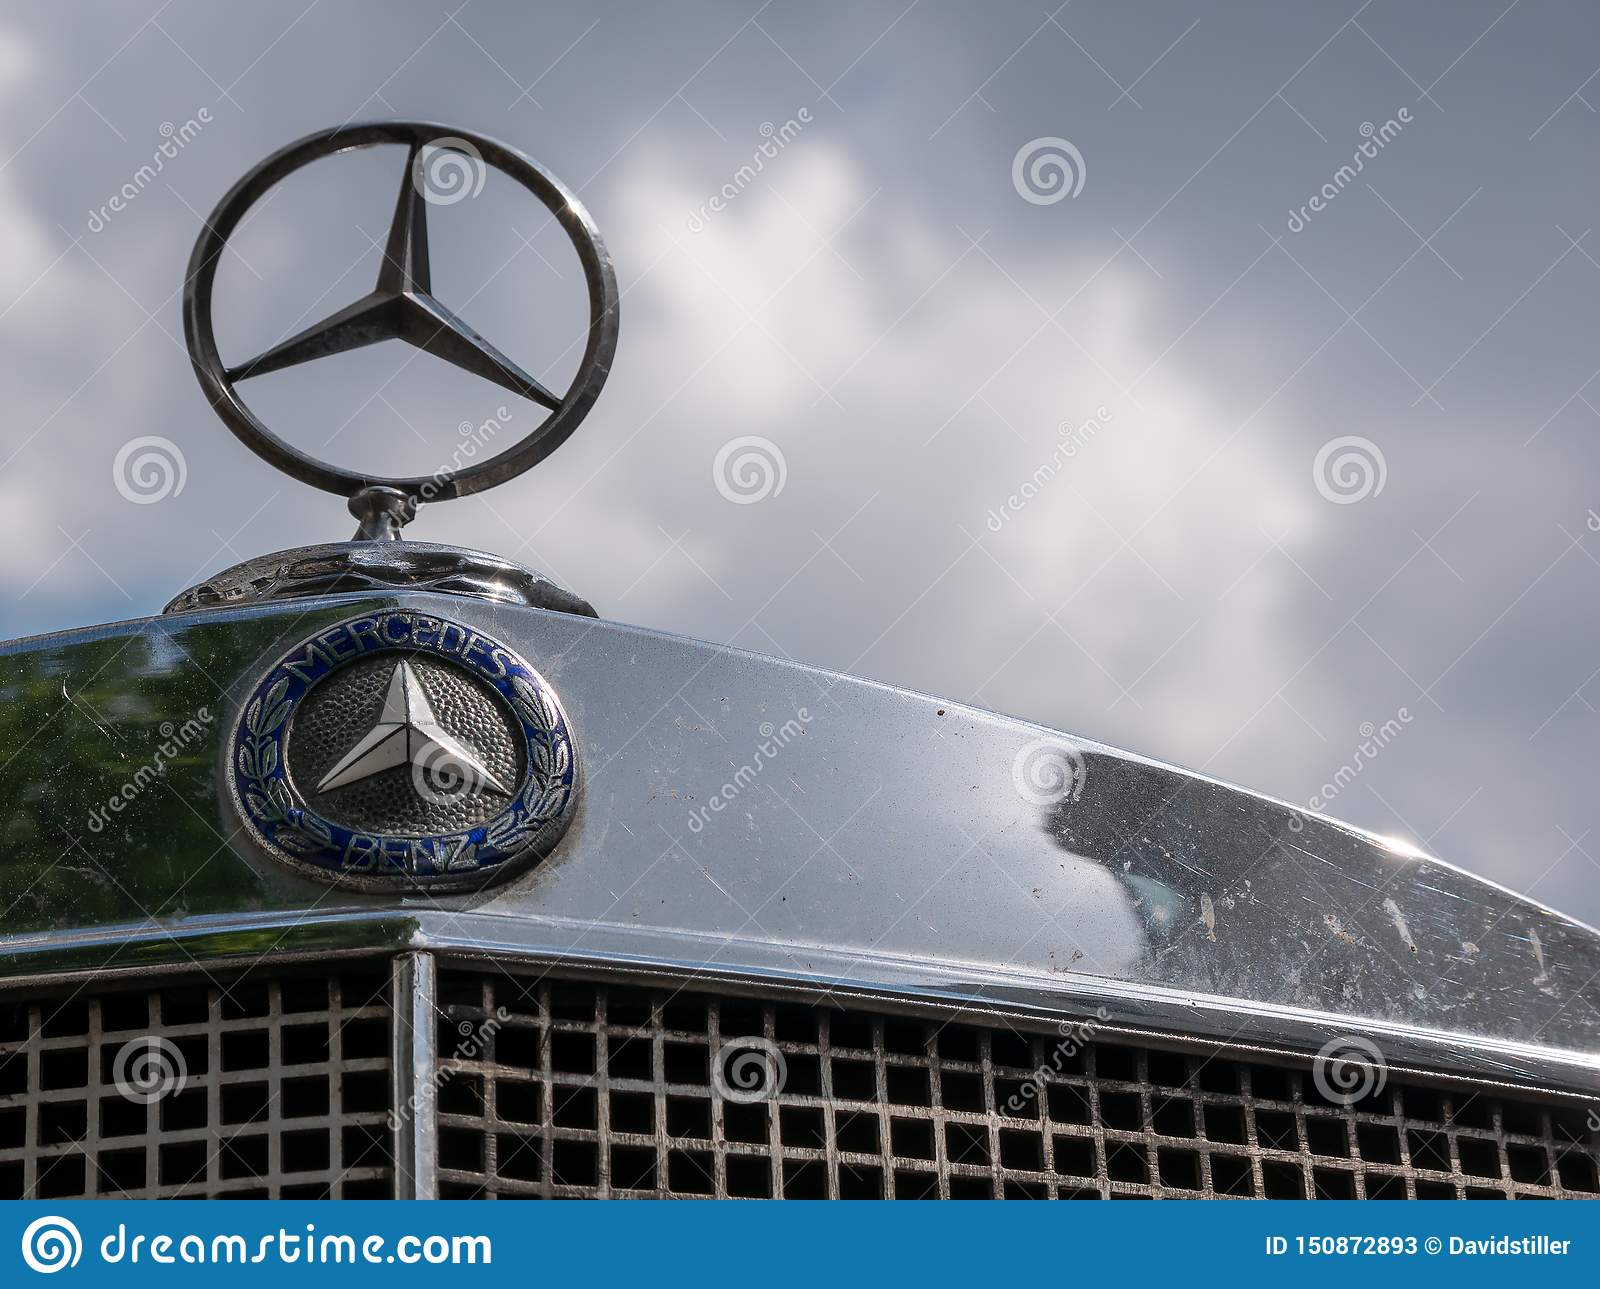 Mercedes Logo And Star On A Mercedes Vintage Car Against A Cloudy Sky